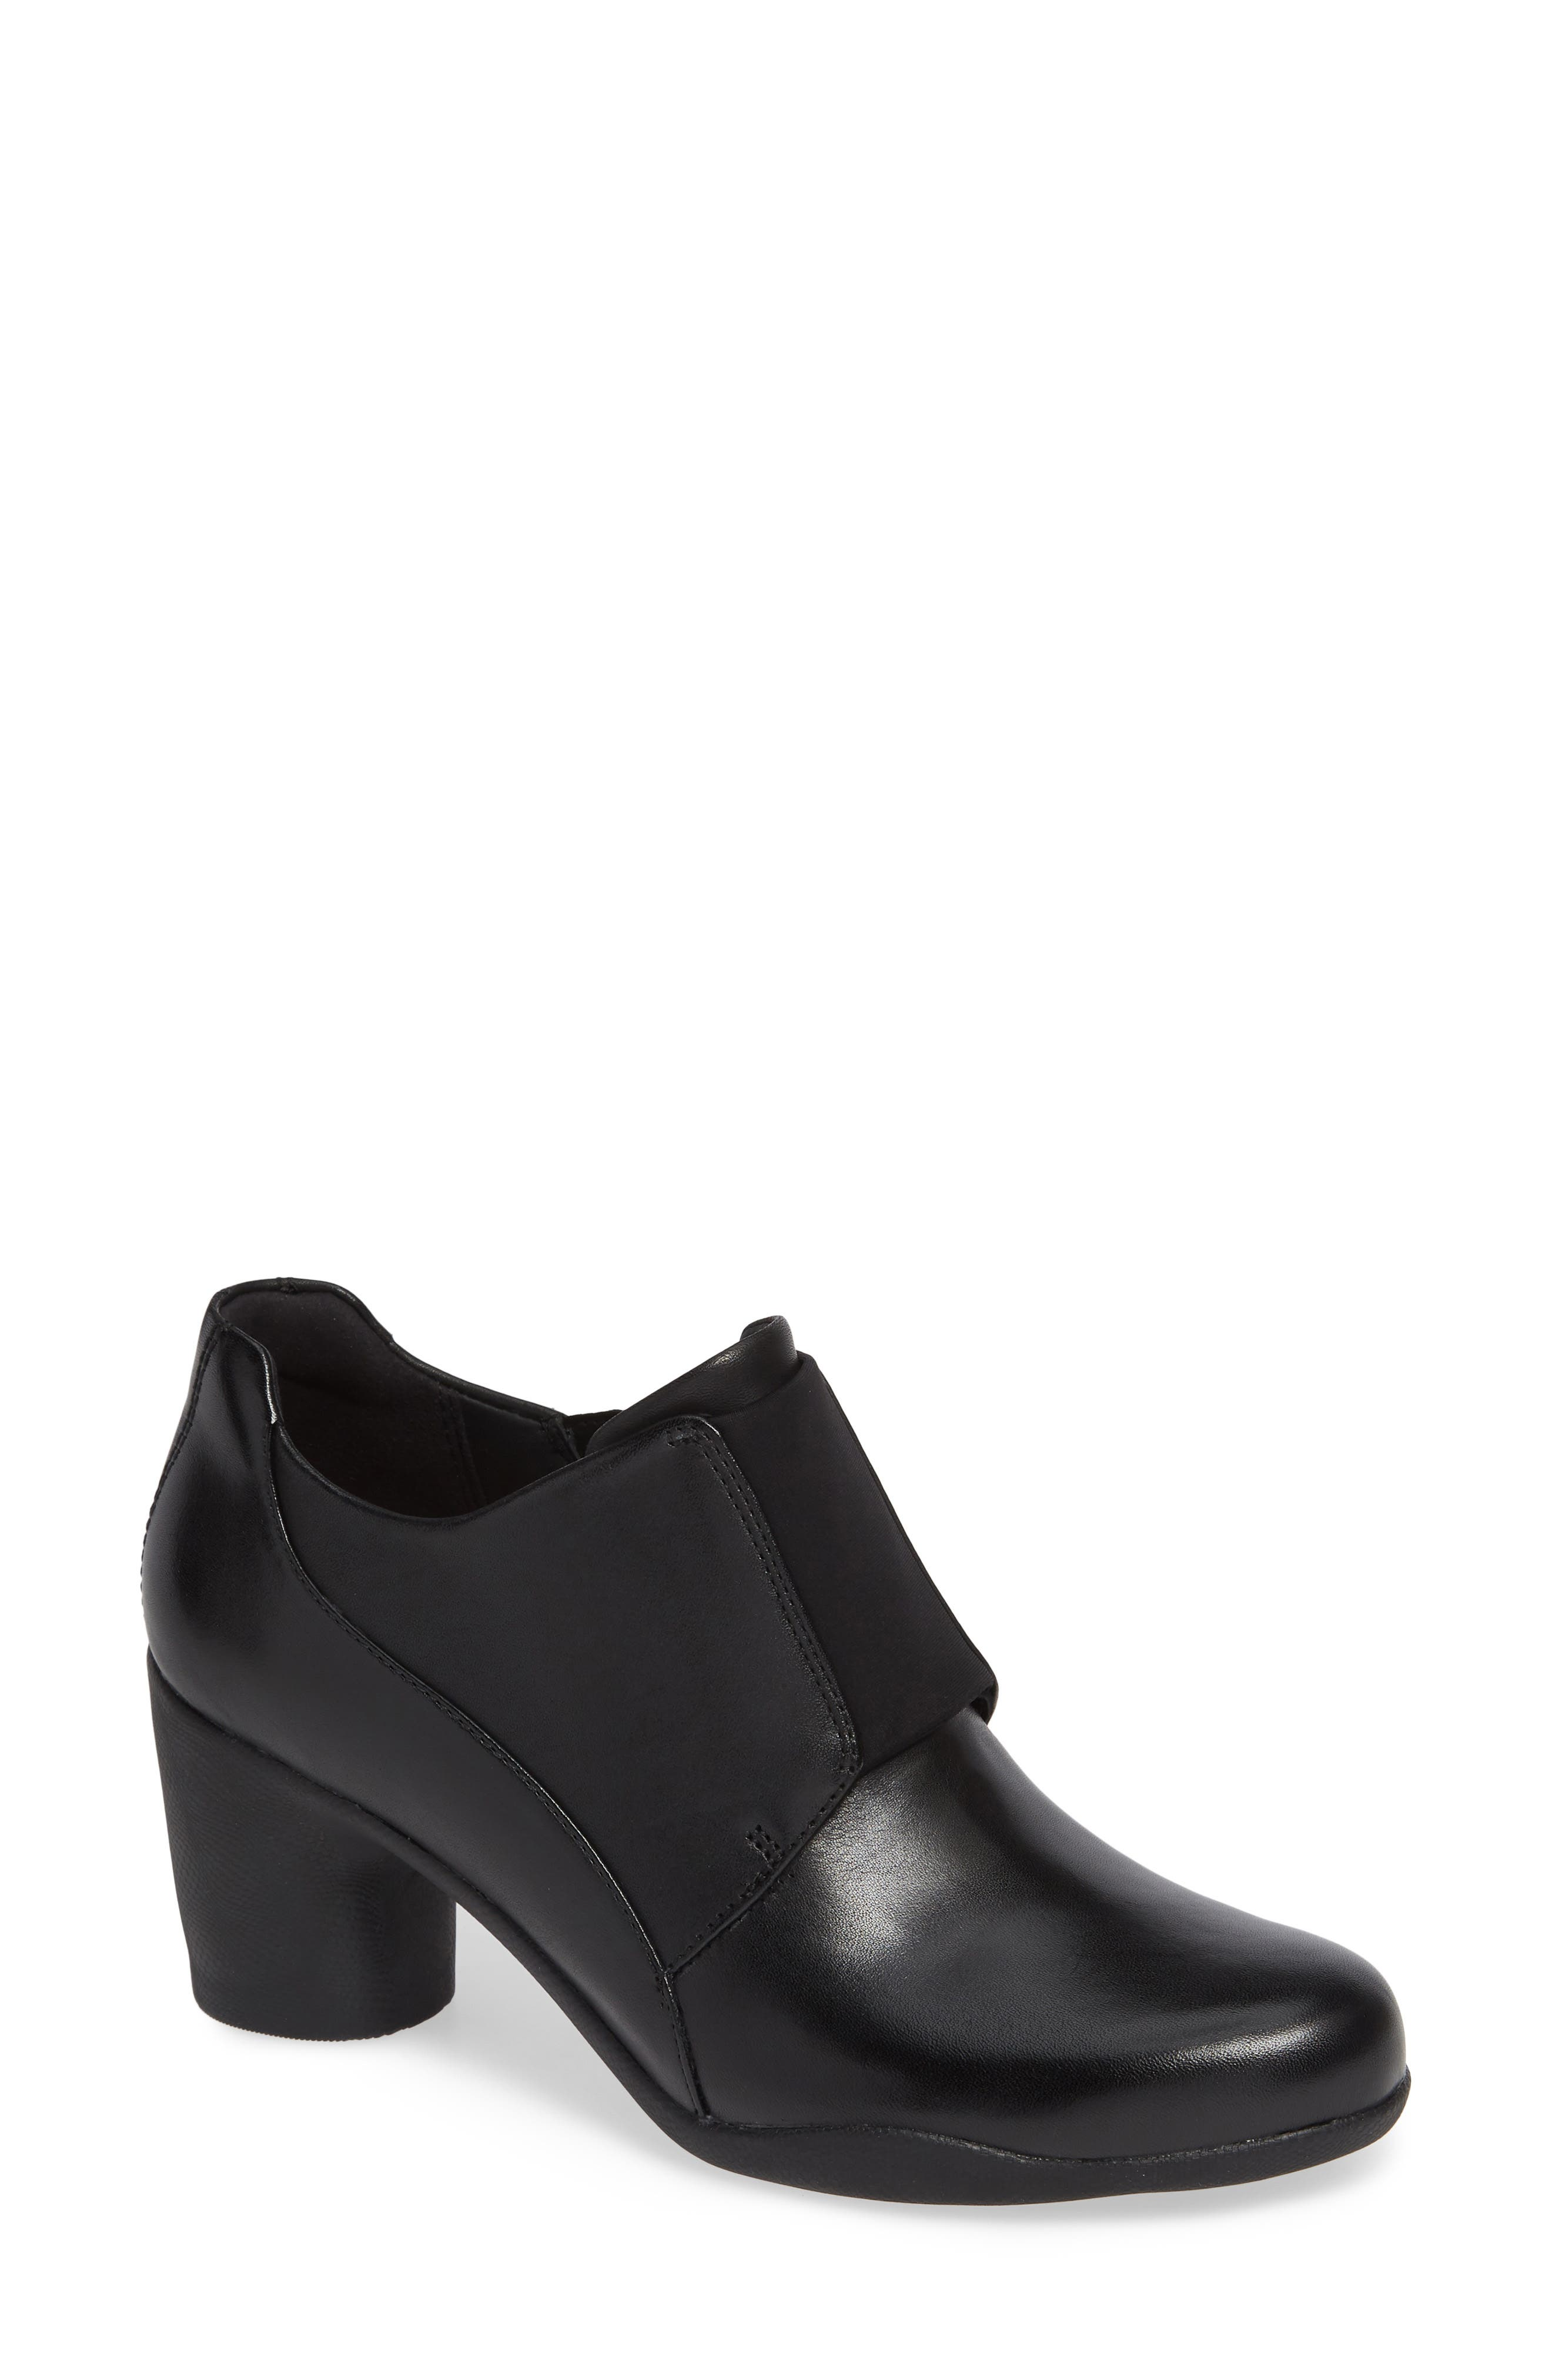 CLARKS<SUP>®</SUP> Un Rosa Zip Bootie, Main, color, BLACK LEATHER